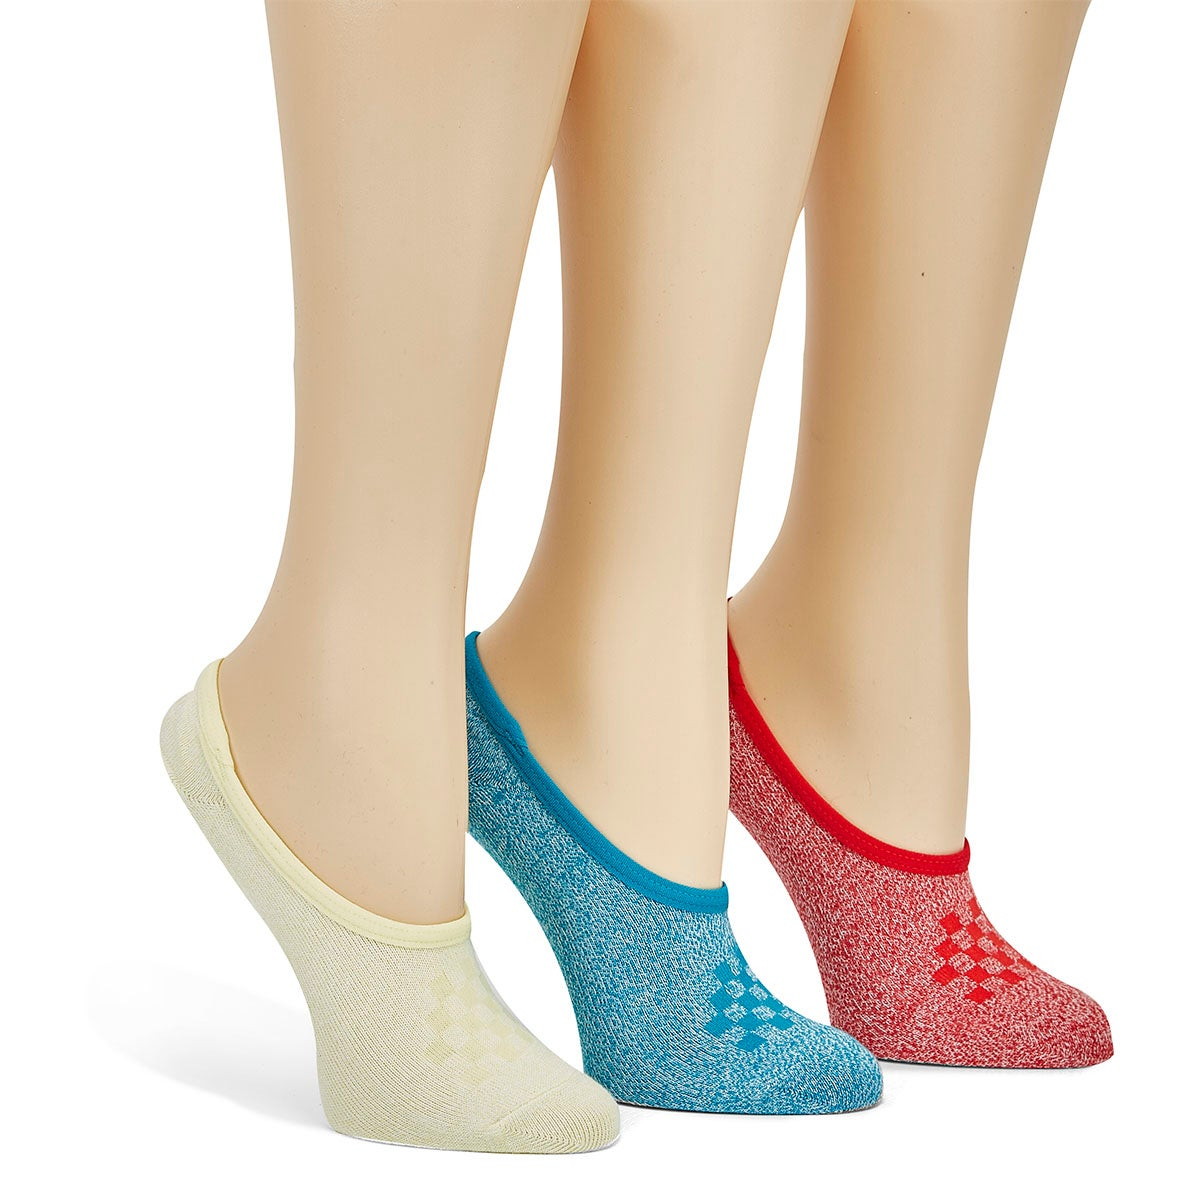 Women's CLASSIC MARLED CANOODLE ankle socks -3pk